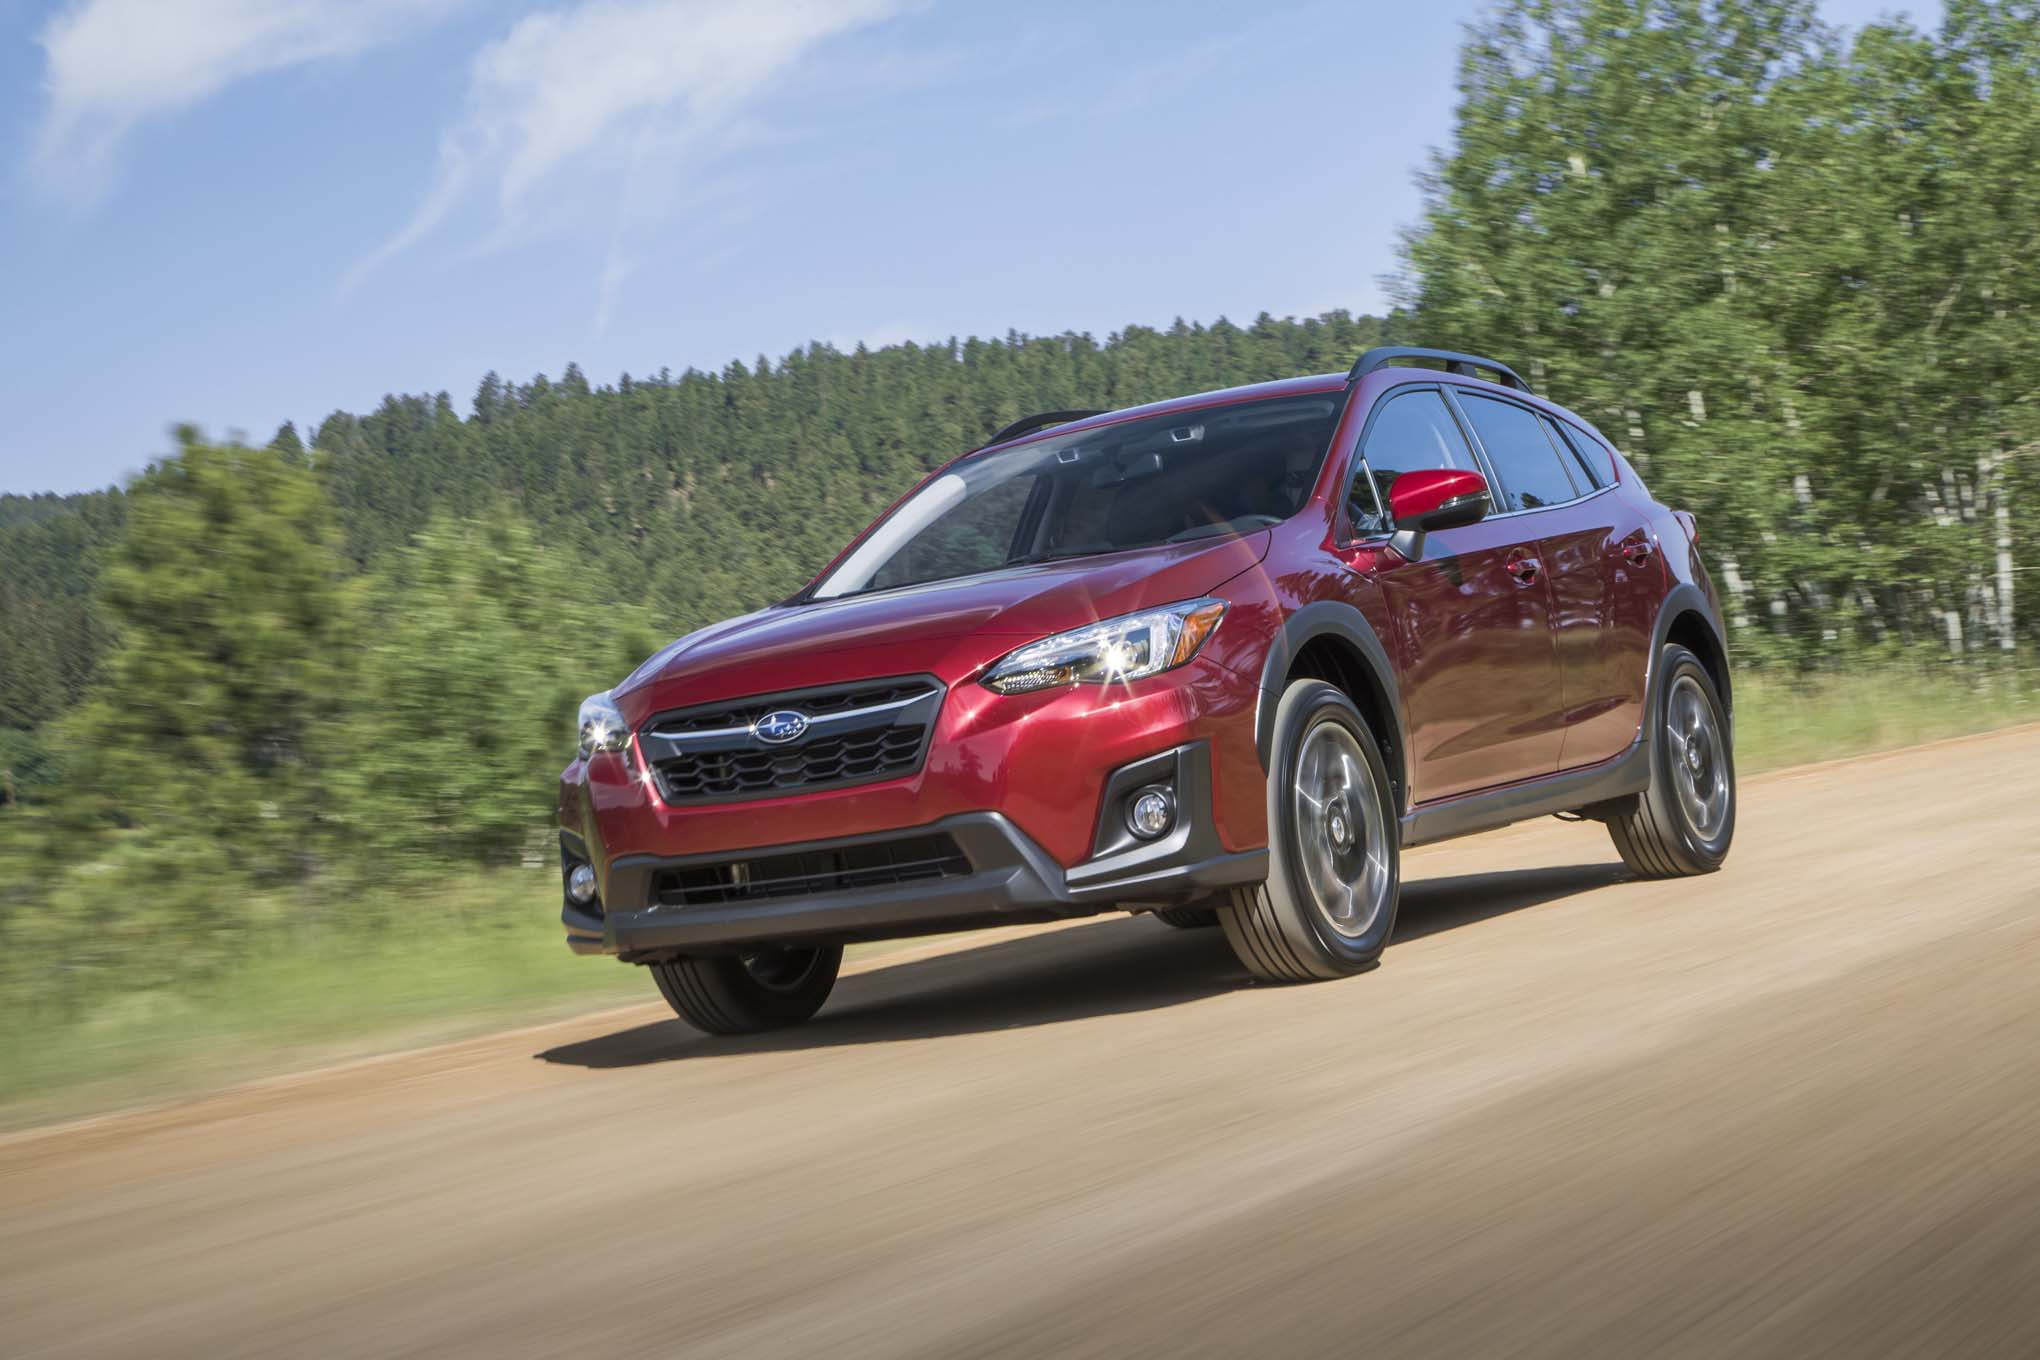 2018 Subaru Crosstrek Front Three Quarter In Motion 05 3